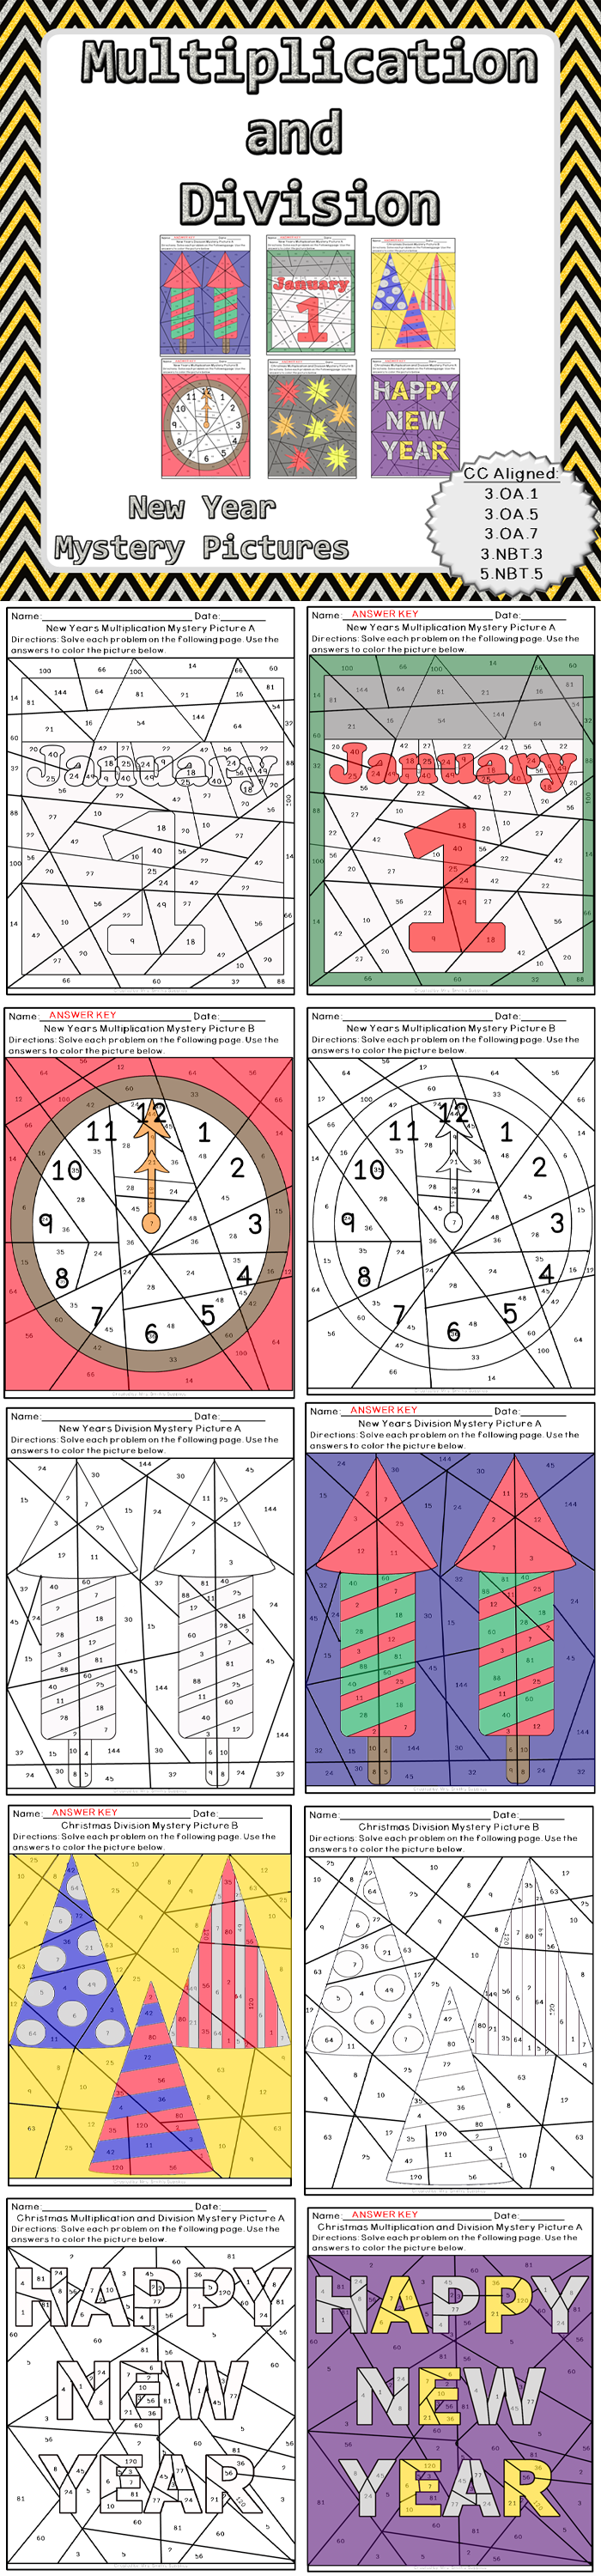 New Year Multiplication and Division Mystery Pictures | Math fact ...